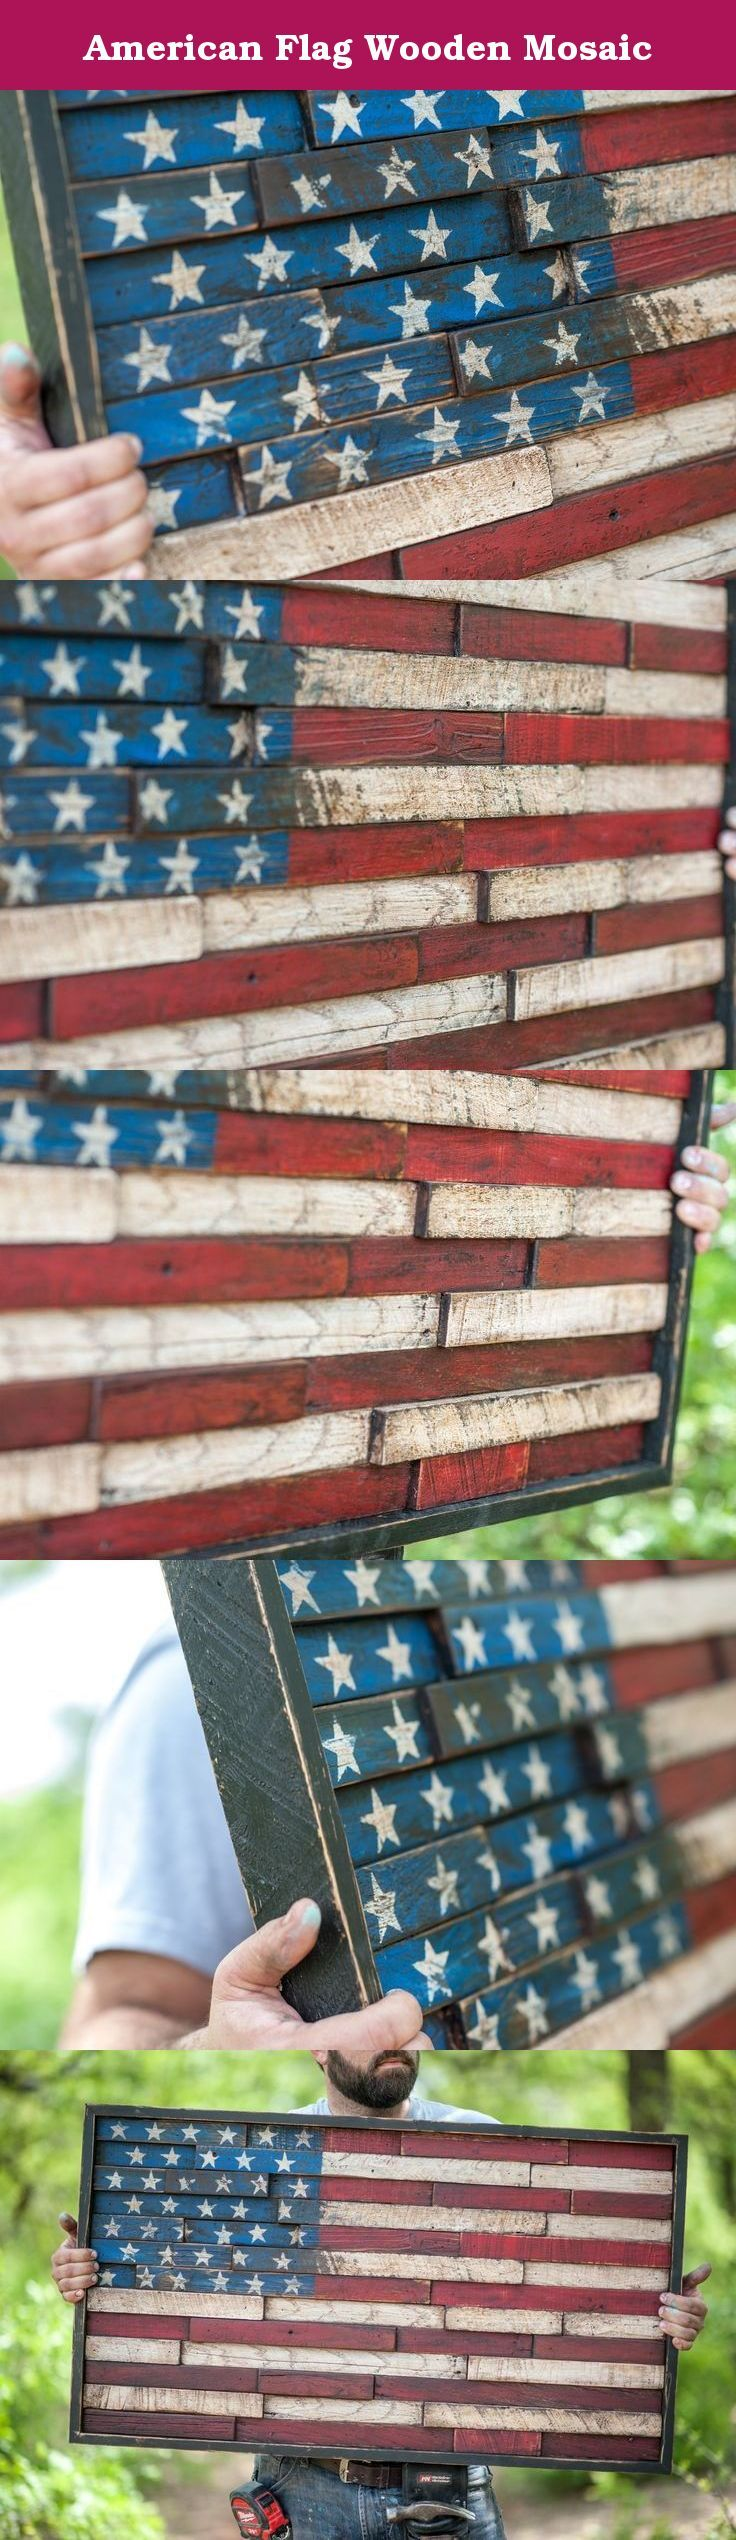 """American Flag Wooden Mosaic. This Wooden American Flag is absolutely stunning! Itwas hand painted and distressed and coated with protective wax for years of protection. It fits perfectly over the mantle in our home! **HANDSOME BEARDED MAN NOT INCLUDED** This flag measures appx 38"""" x 22"""" x 3"""" deep. This flag has a traditional wire hanger on the back for easy hanging. Made from reclaimed wood gathered from contractors after jobs. We are happy to reuse and recycle their old wood! This sign…"""